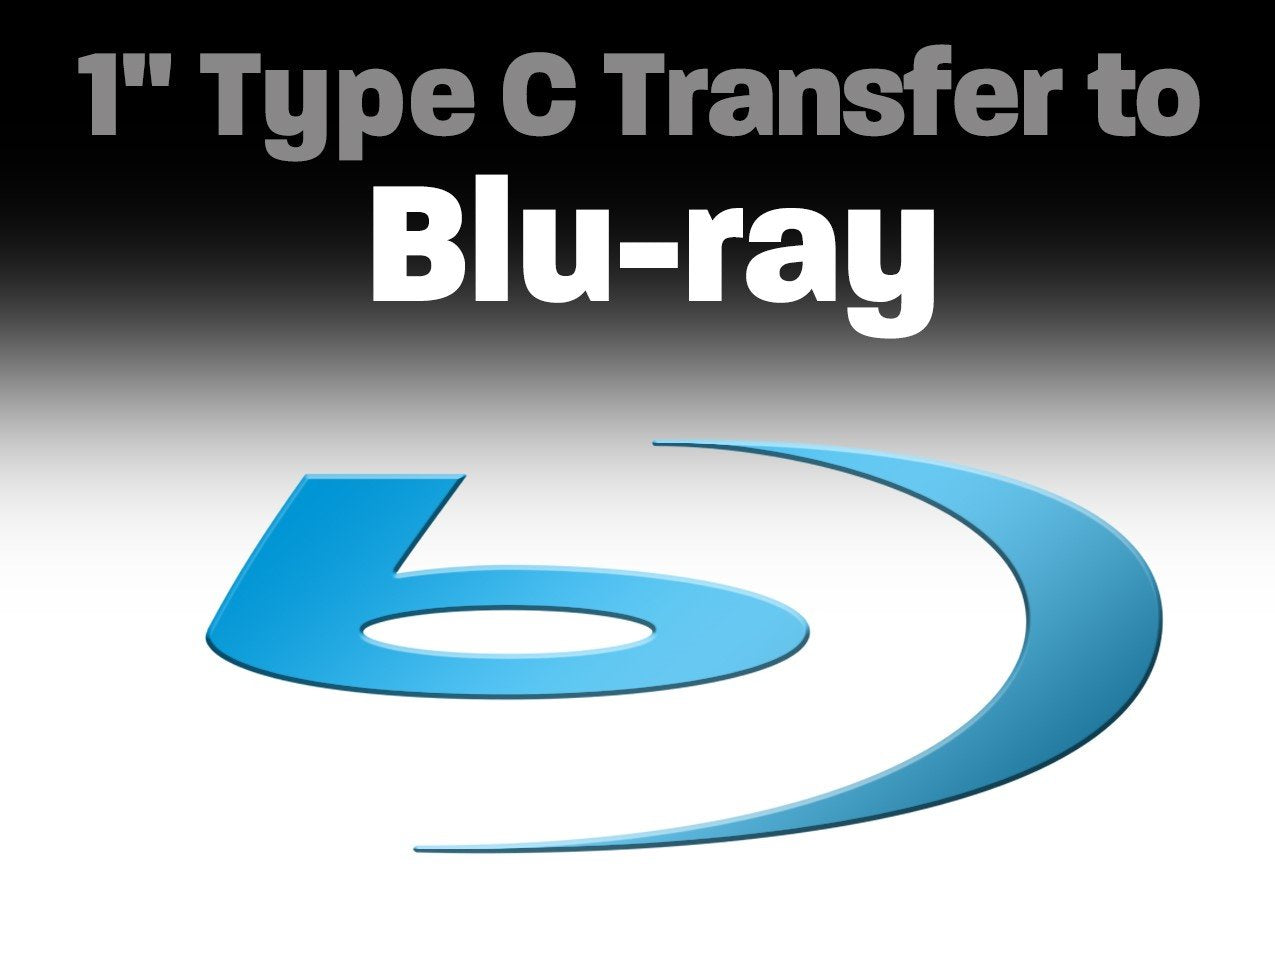 "1"" Type C Transfer to Blu-ray"